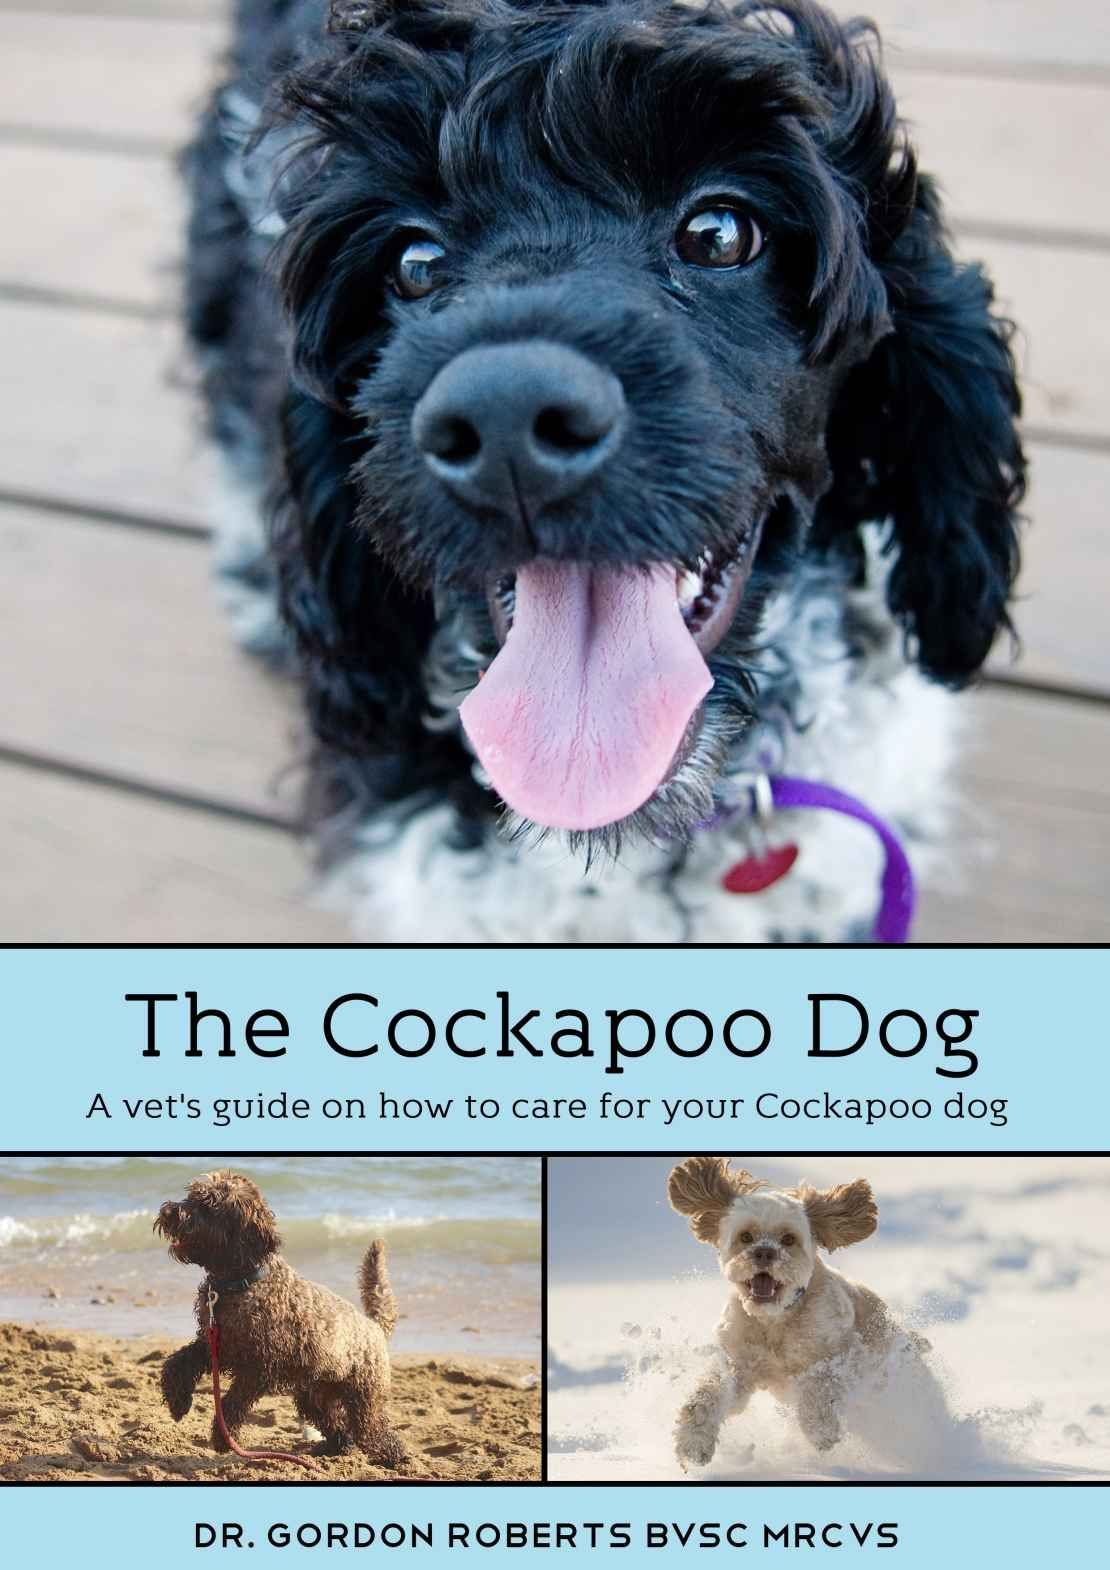 The Cockapoo Dog A vet's guide on how to care for your